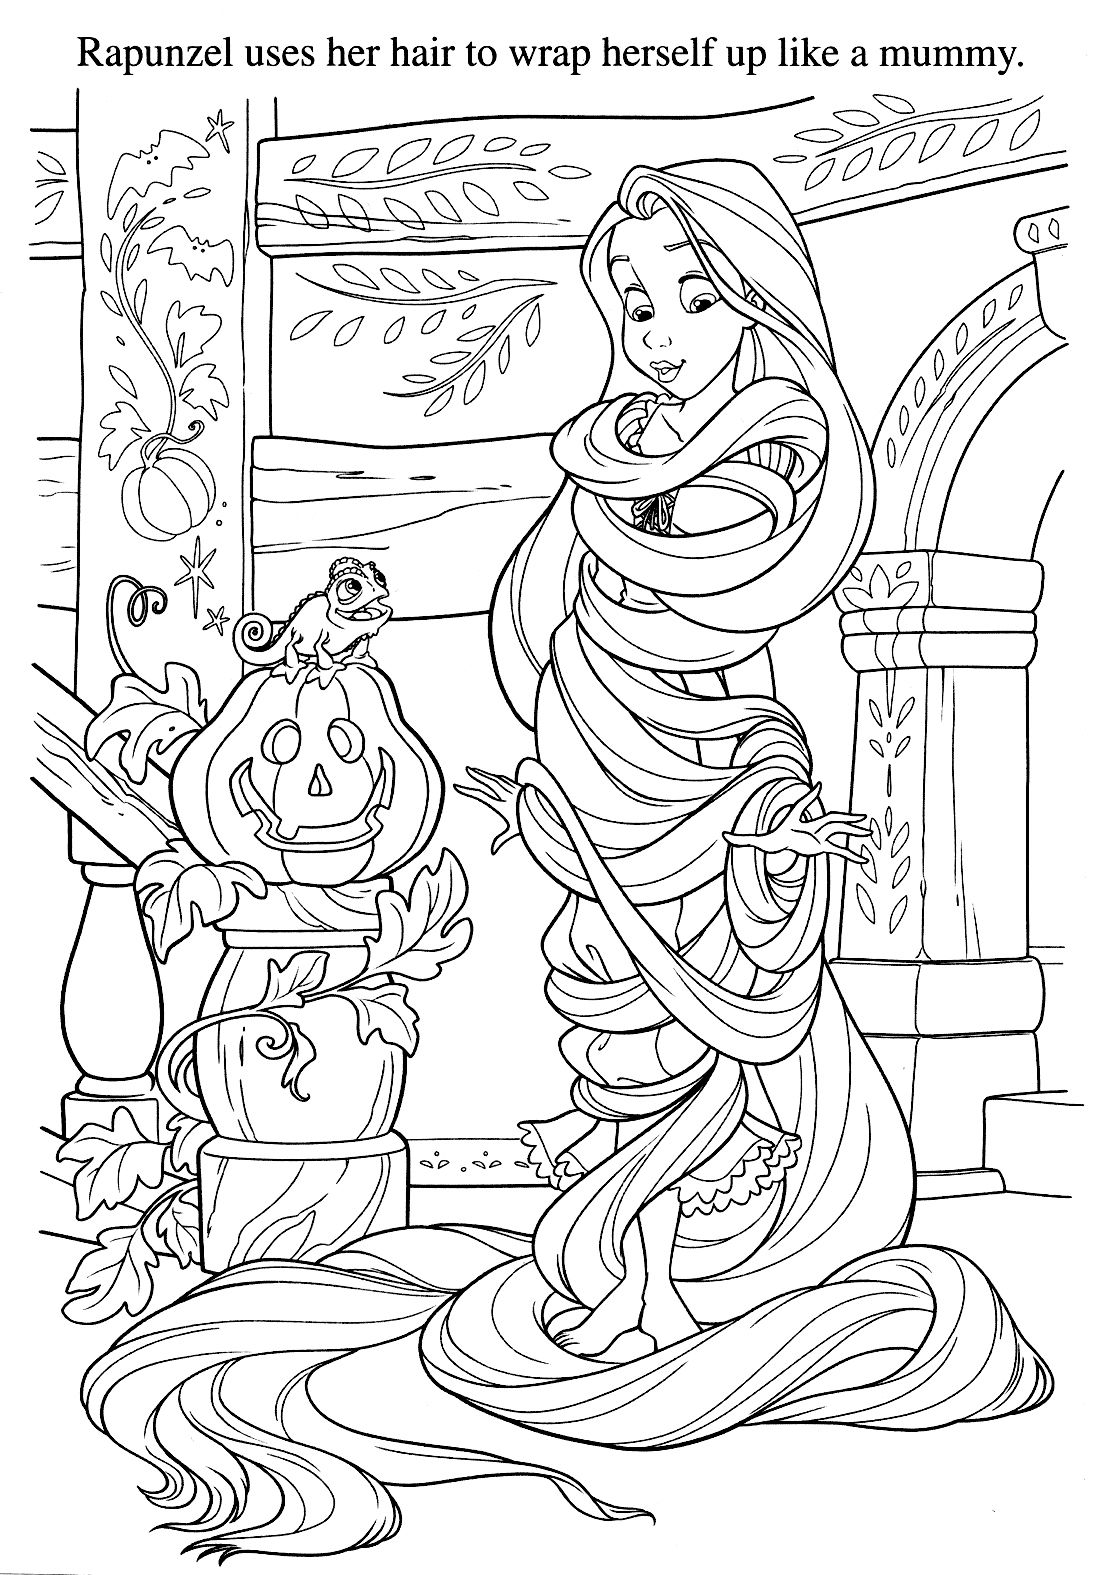 Walt Disney Ausmalbilder Rapunzel Neu Verföhnt : Disney Coloring Pages Printable Colouring In Pinterest